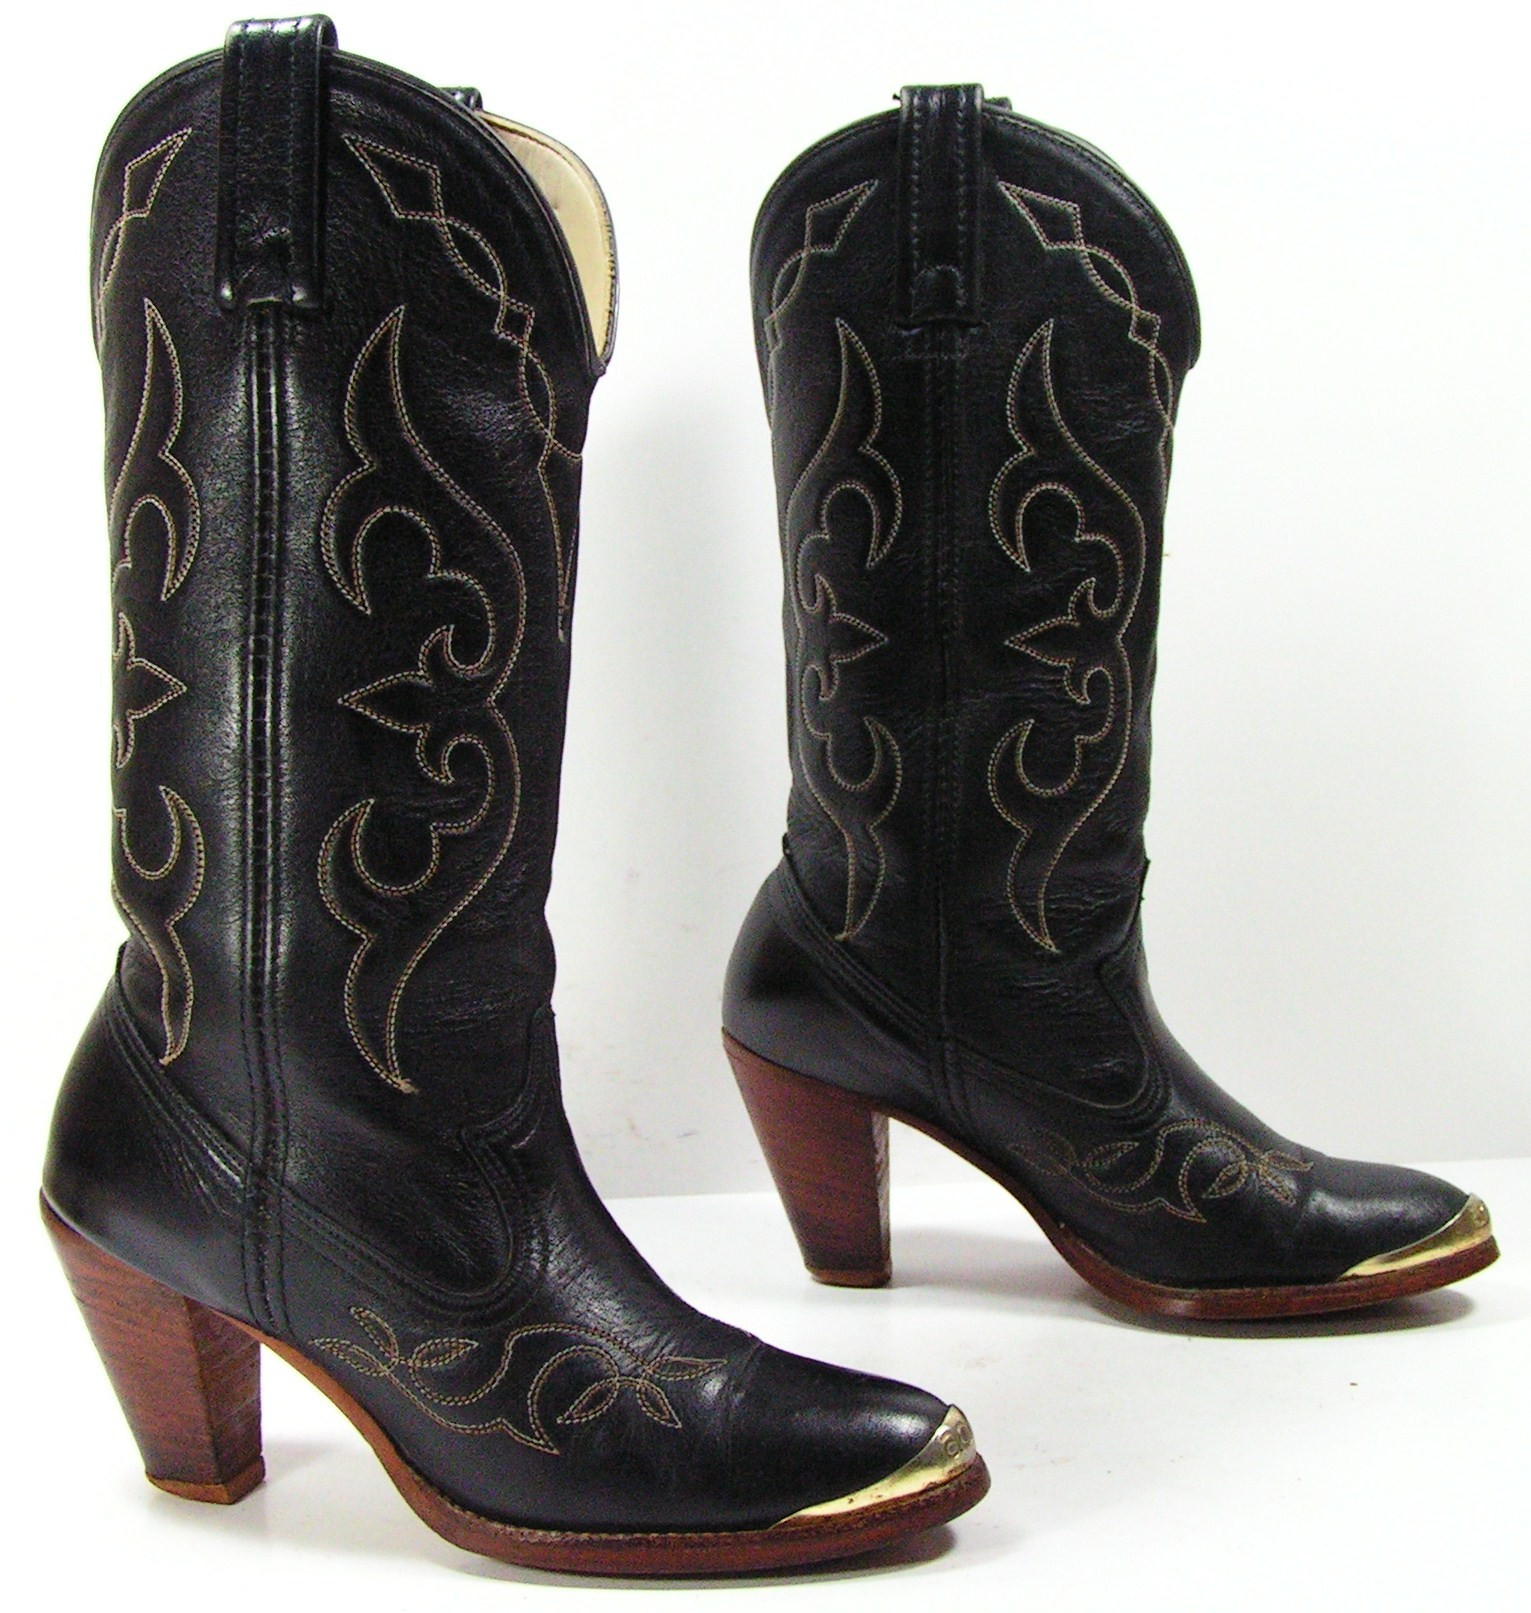 Cowgirl Boots With Heels 81ynSJI3